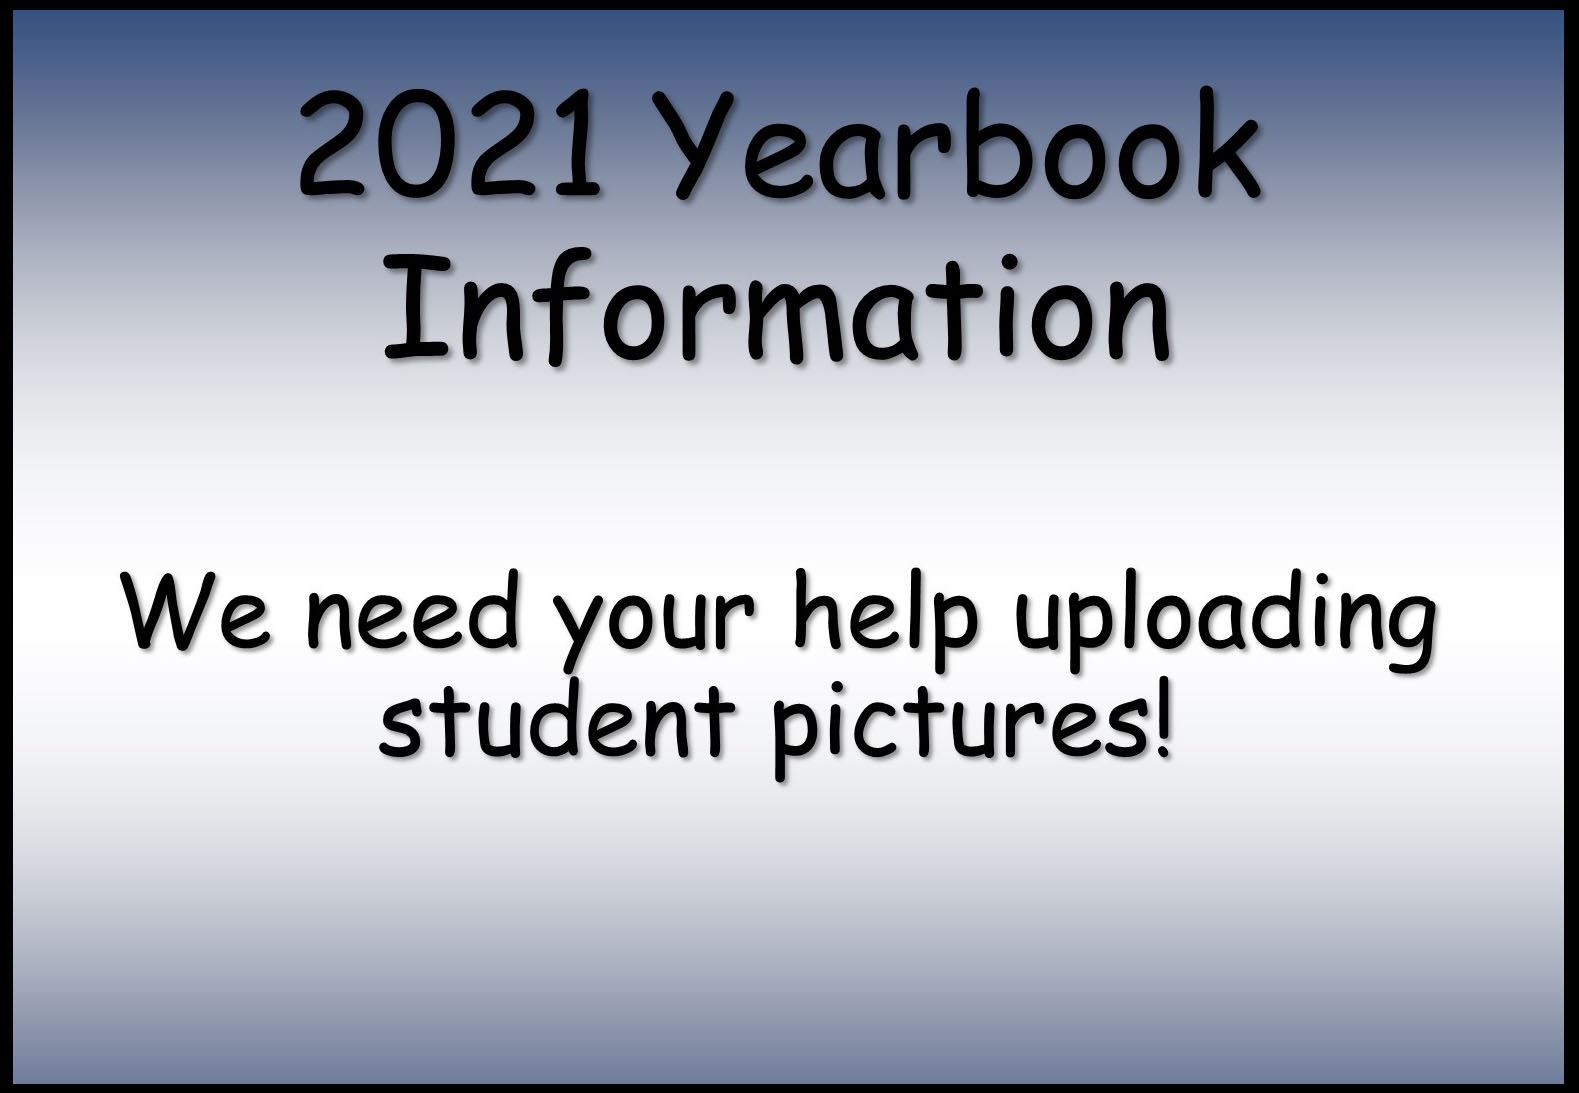 2021 Yearbook info